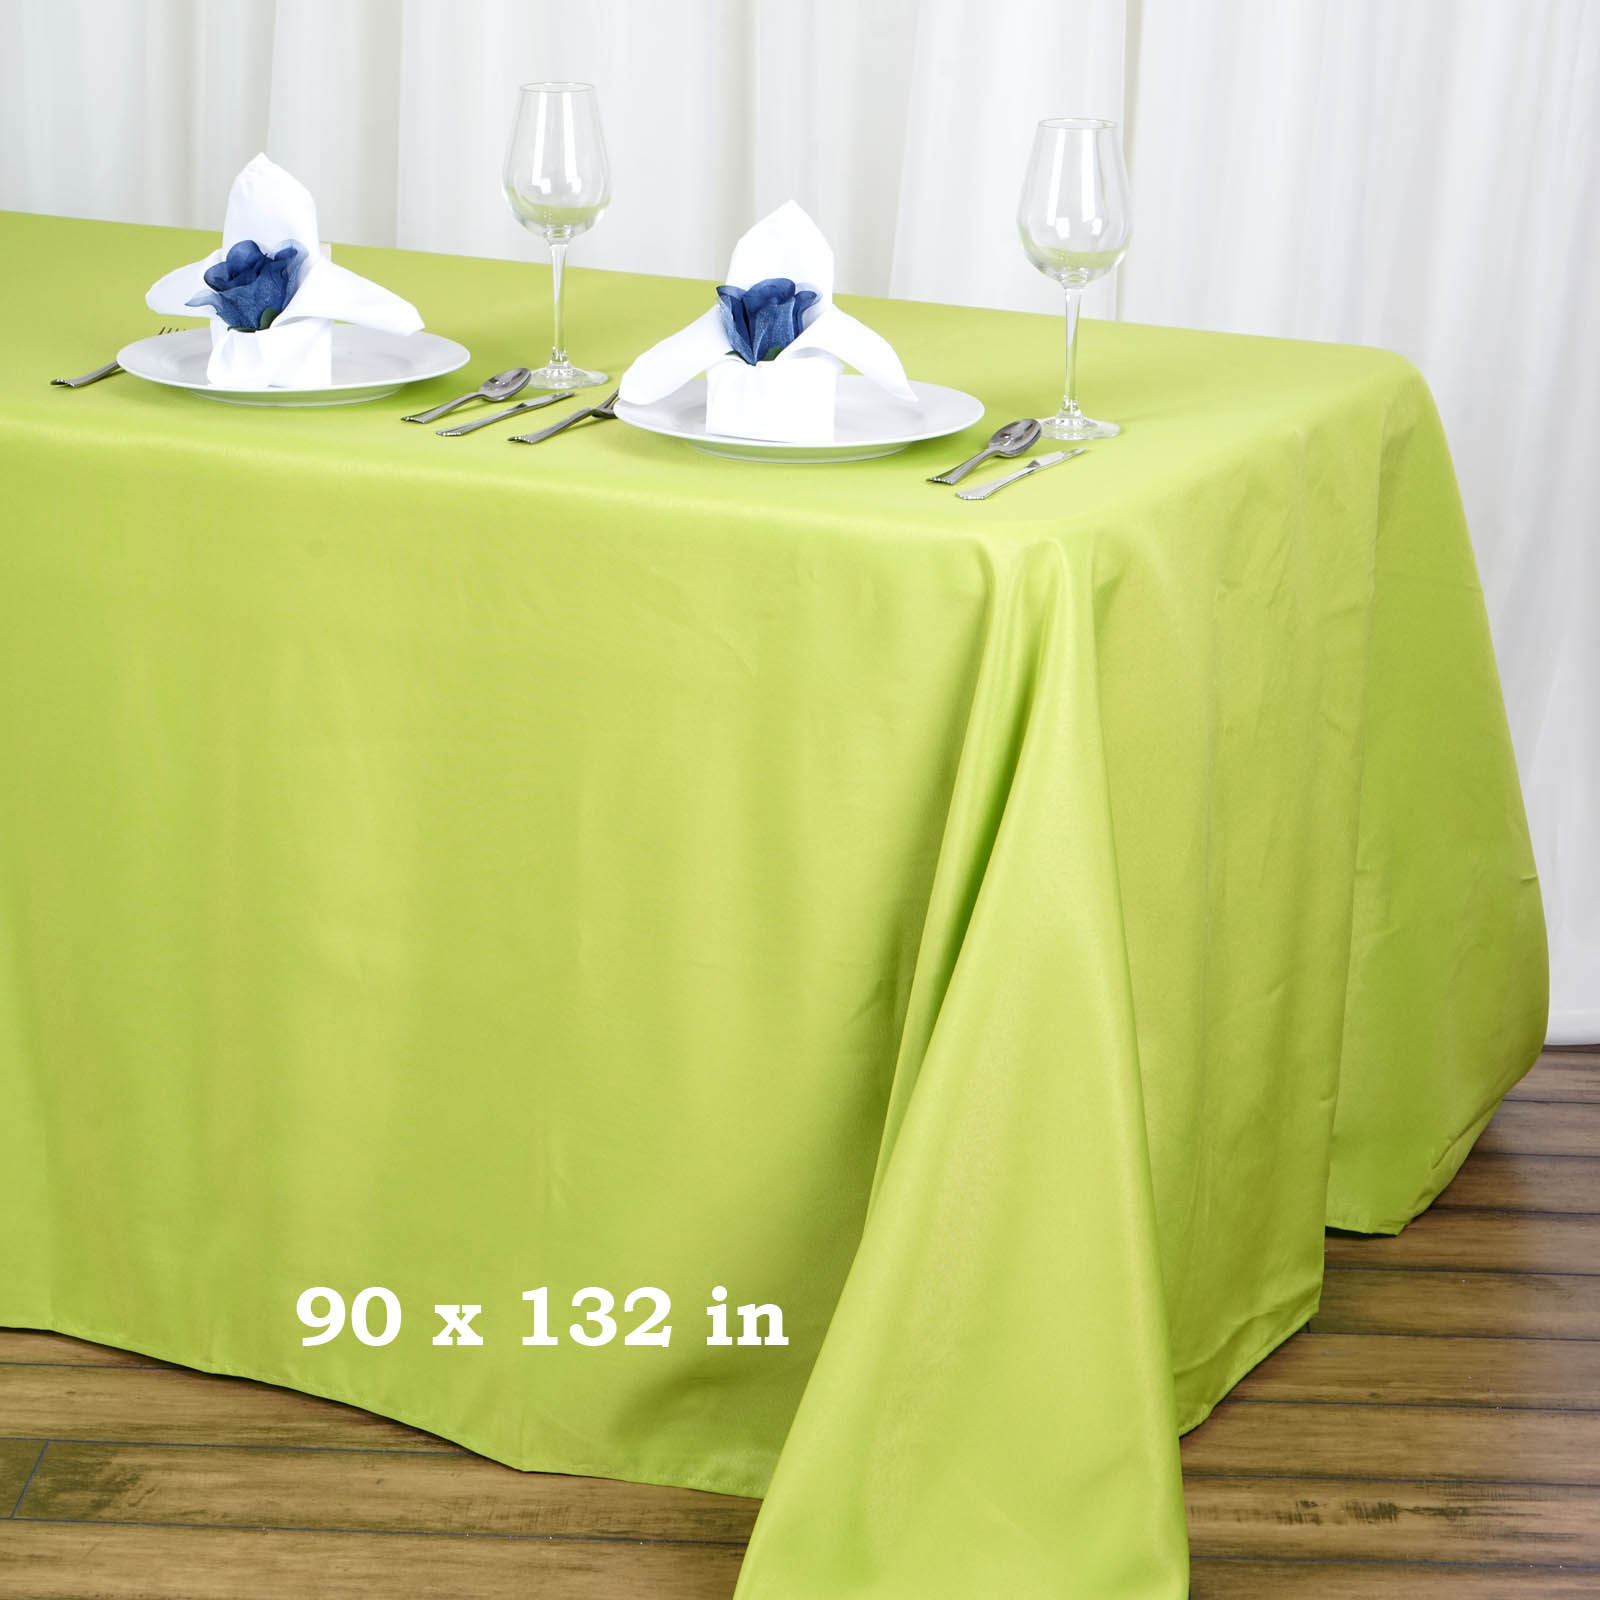 "Efavormart 90x132"" Polyester Rectangle Tablecloths for Kitchen Dining Catering Wedding Birthday Party Decorations Events"